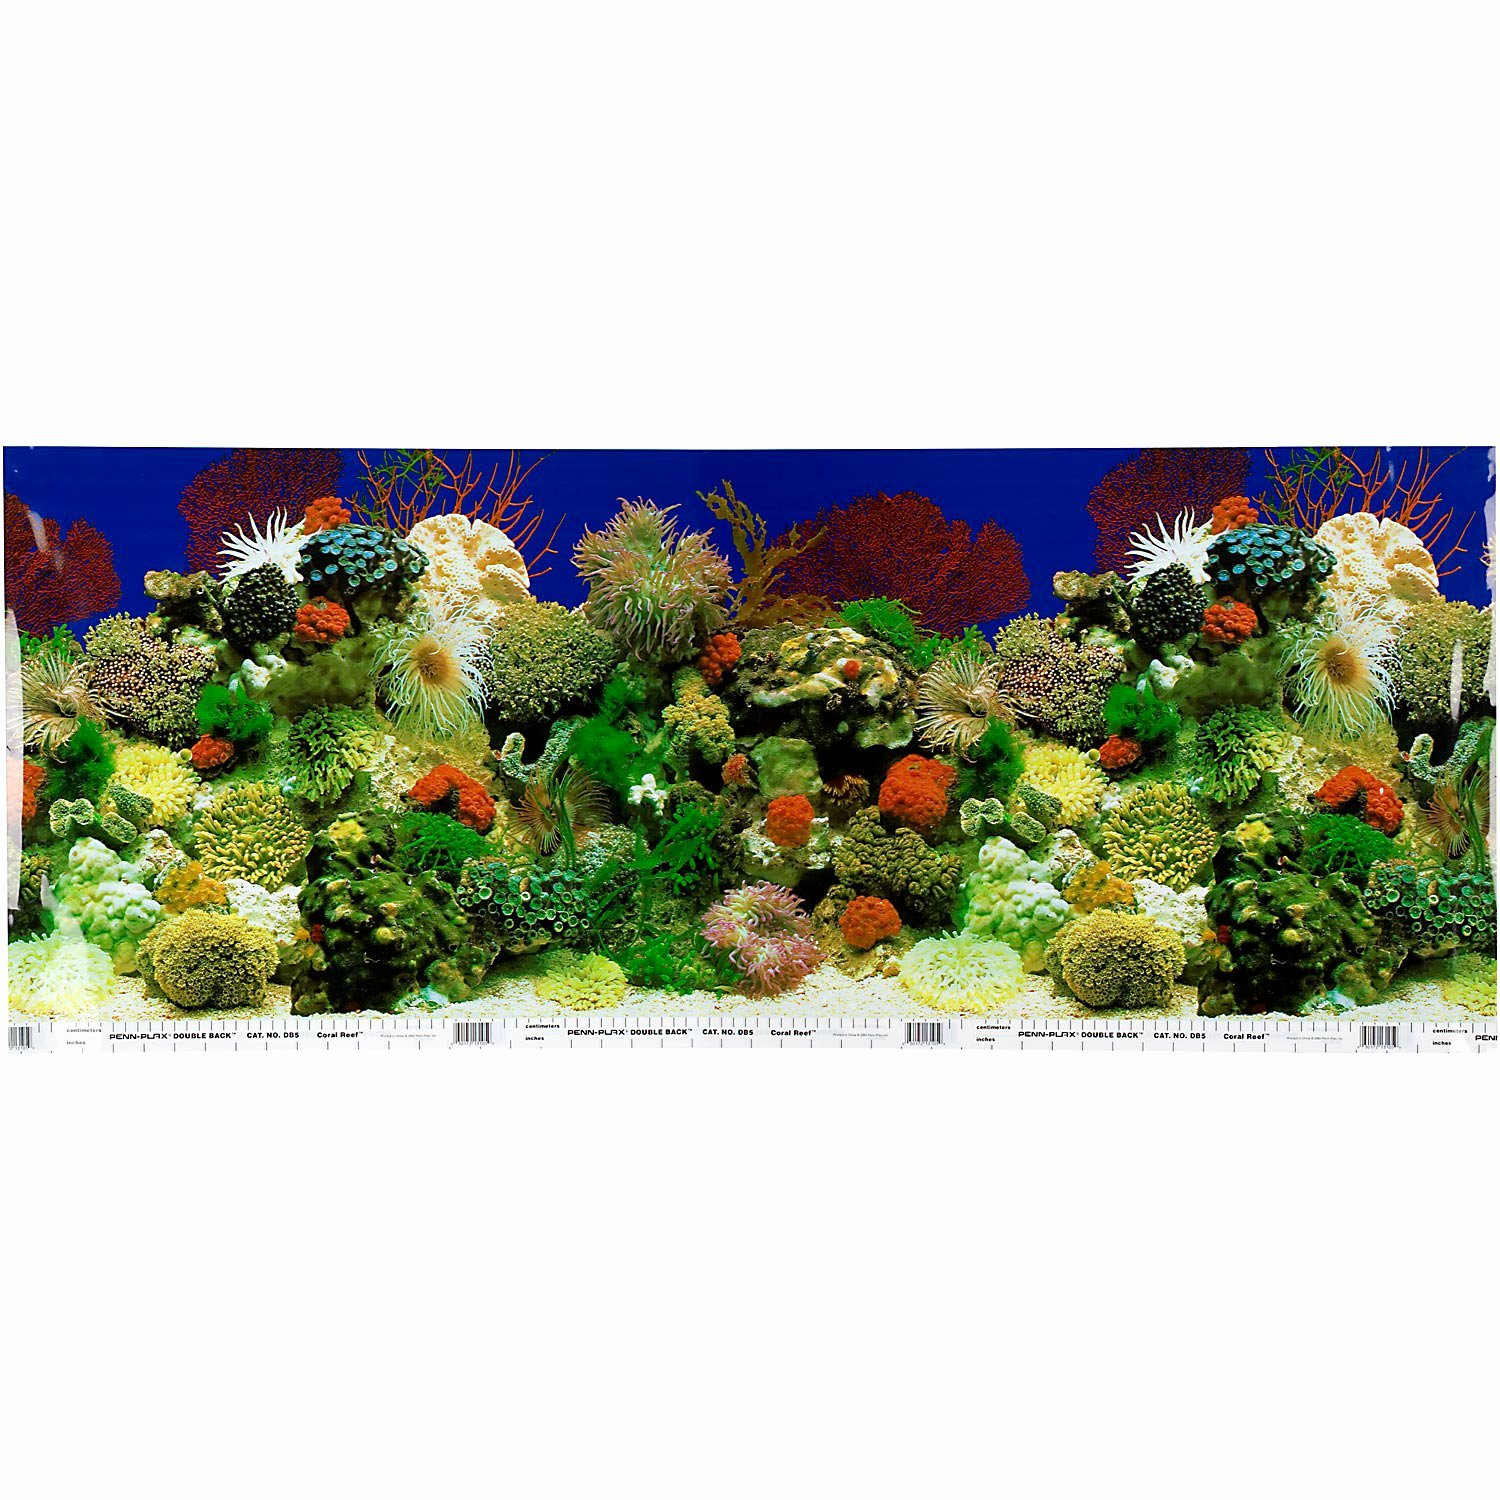 Backgrounds for Fish Tanks New Petco Double Sided Amazon Aquarium Background